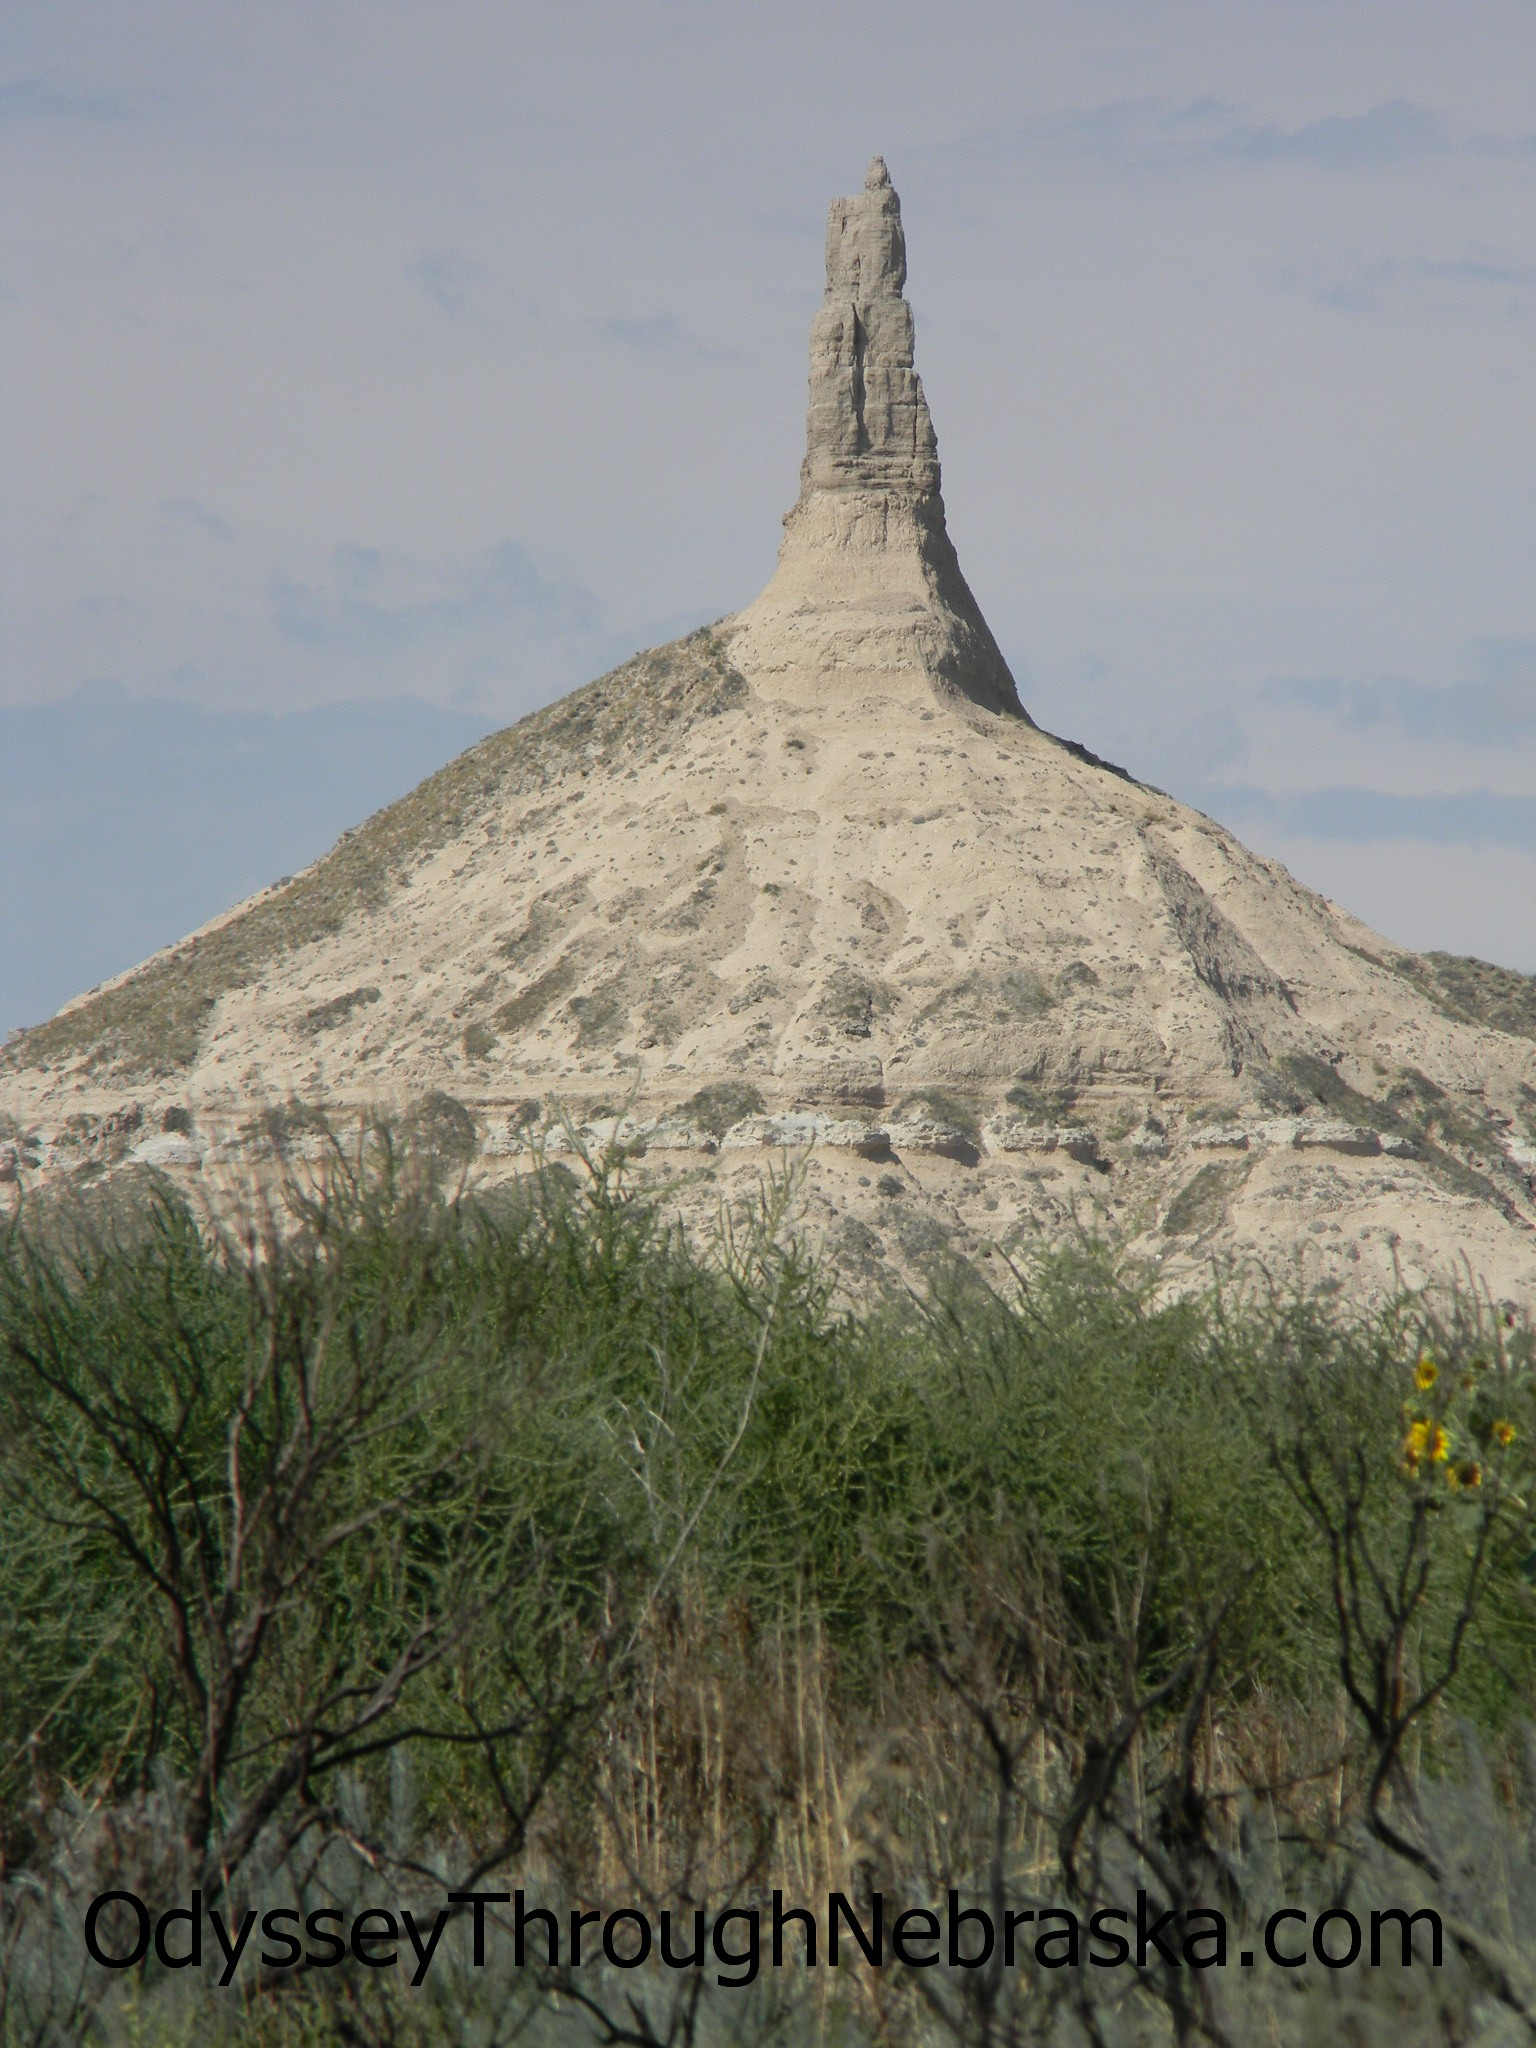 Chimney Rock symbolized Nebraska to the pioneers